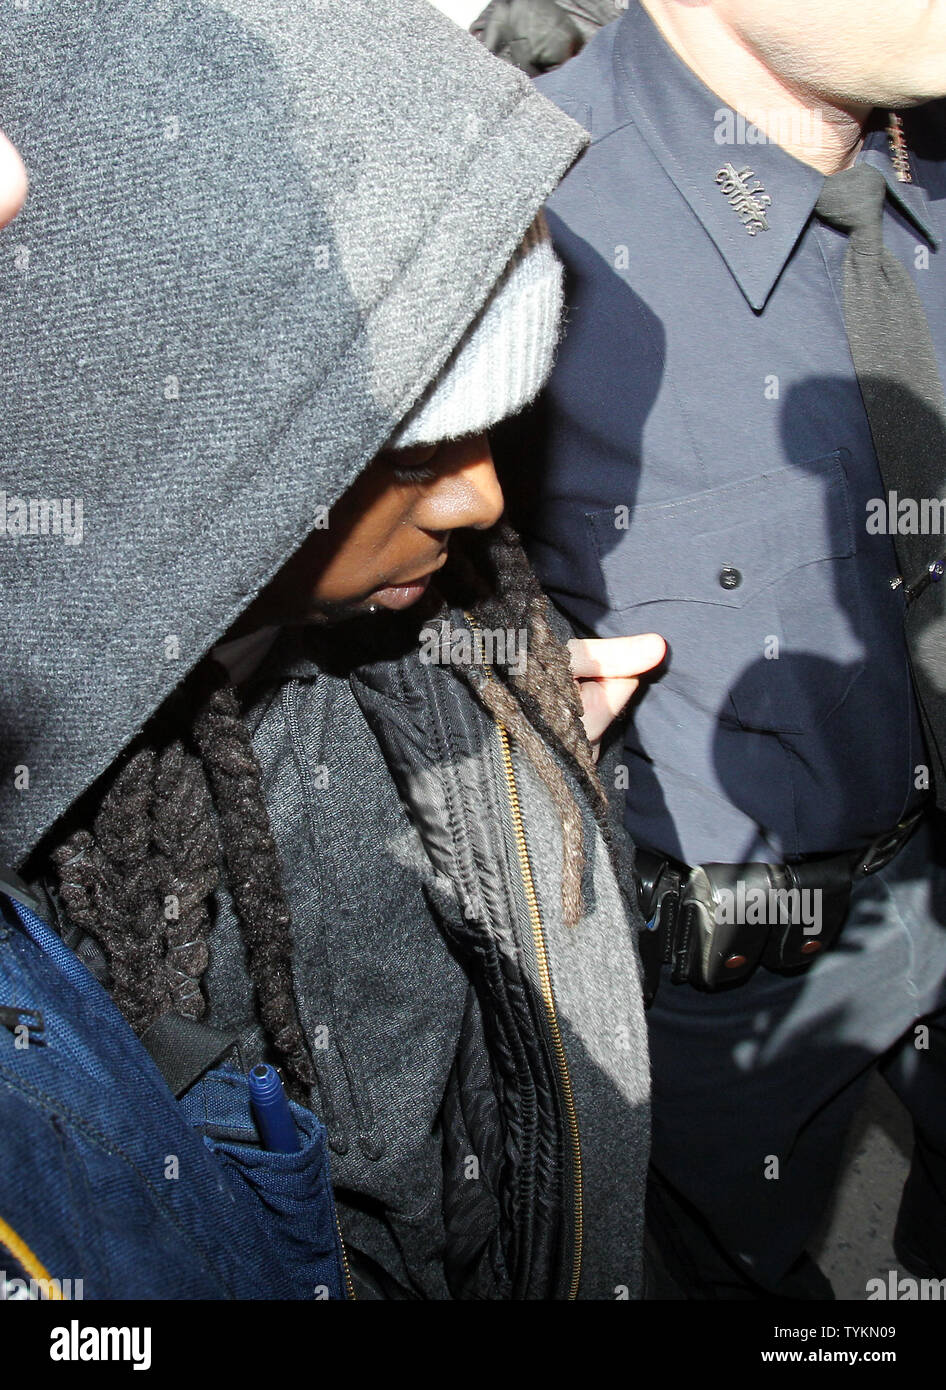 Lil Wayne is escorted into the Manhattan Criminal Court building at